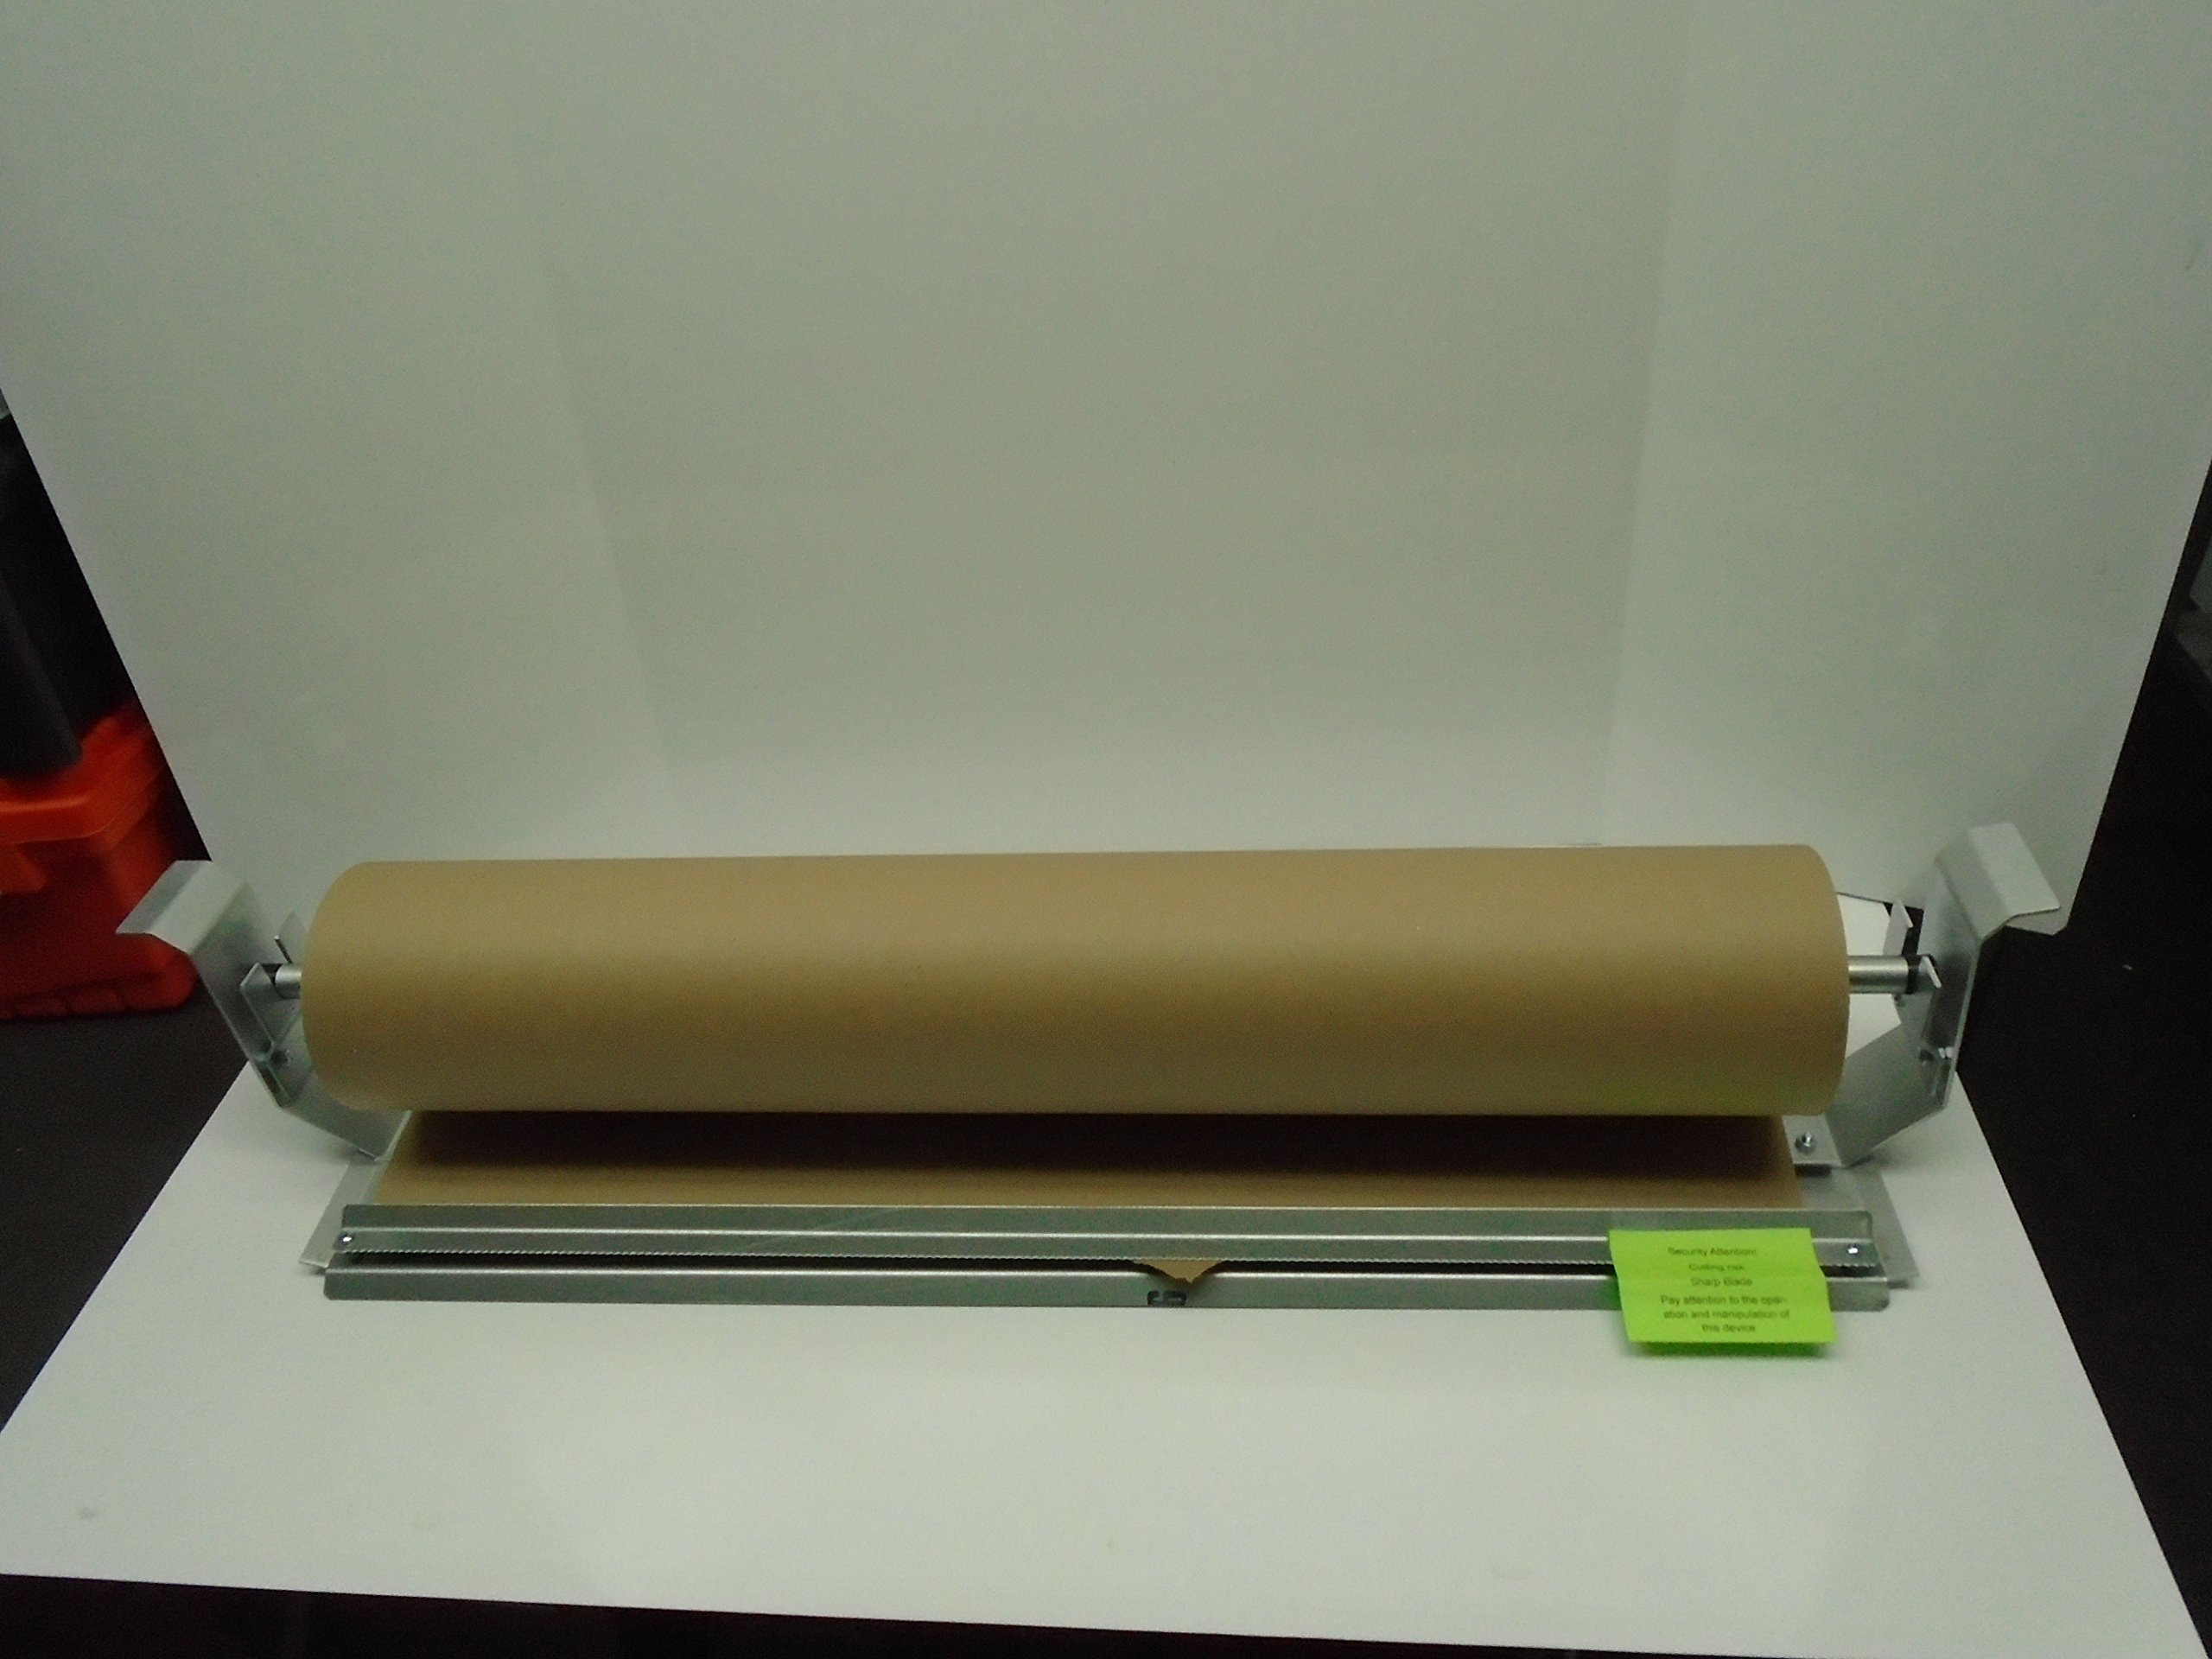 Paper Cutter Roll Dispenser Econoline 60 inches table mount Kraft paper Duralov